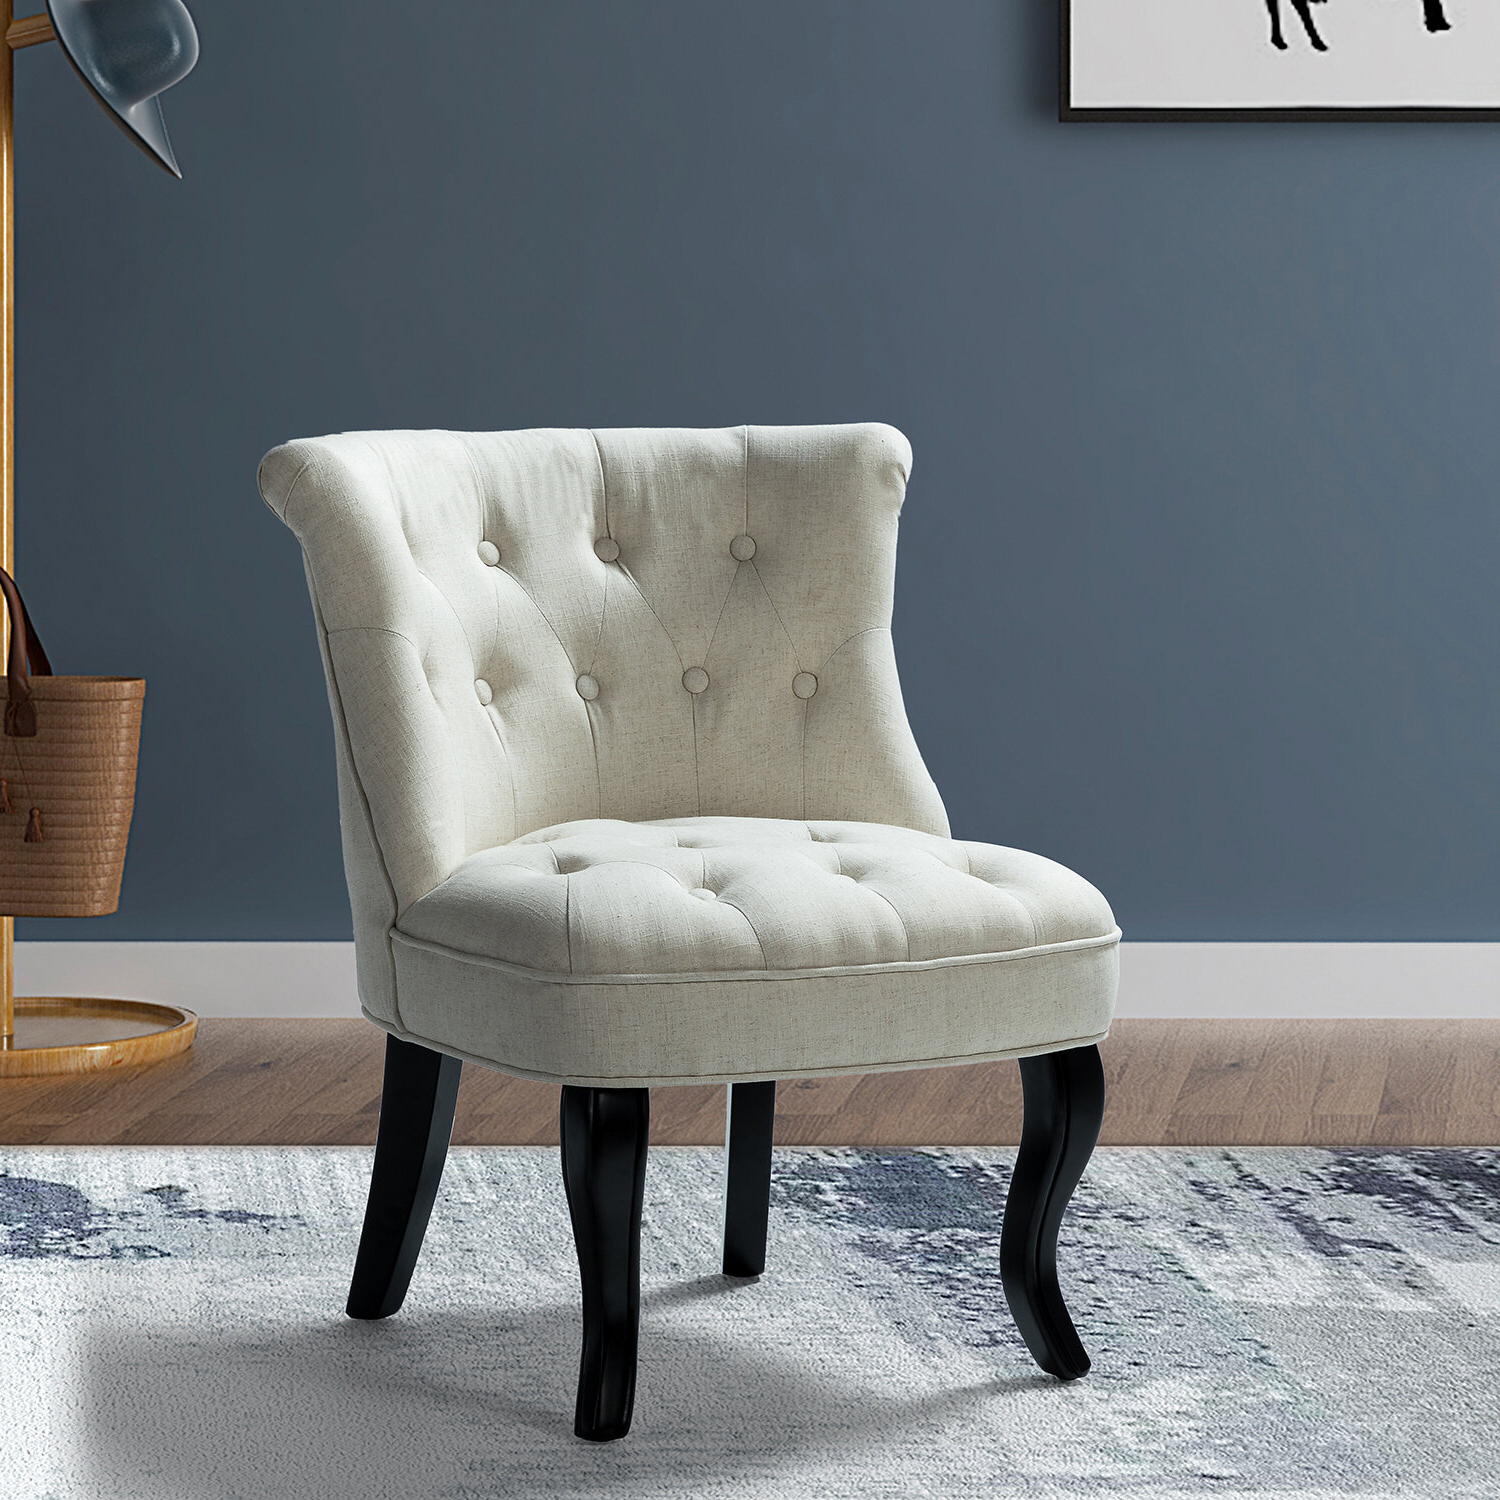 Maubara Tufted Wingback Chairs For Most Popular Maubara Lewisville Wingback Chair (View 3 of 20)